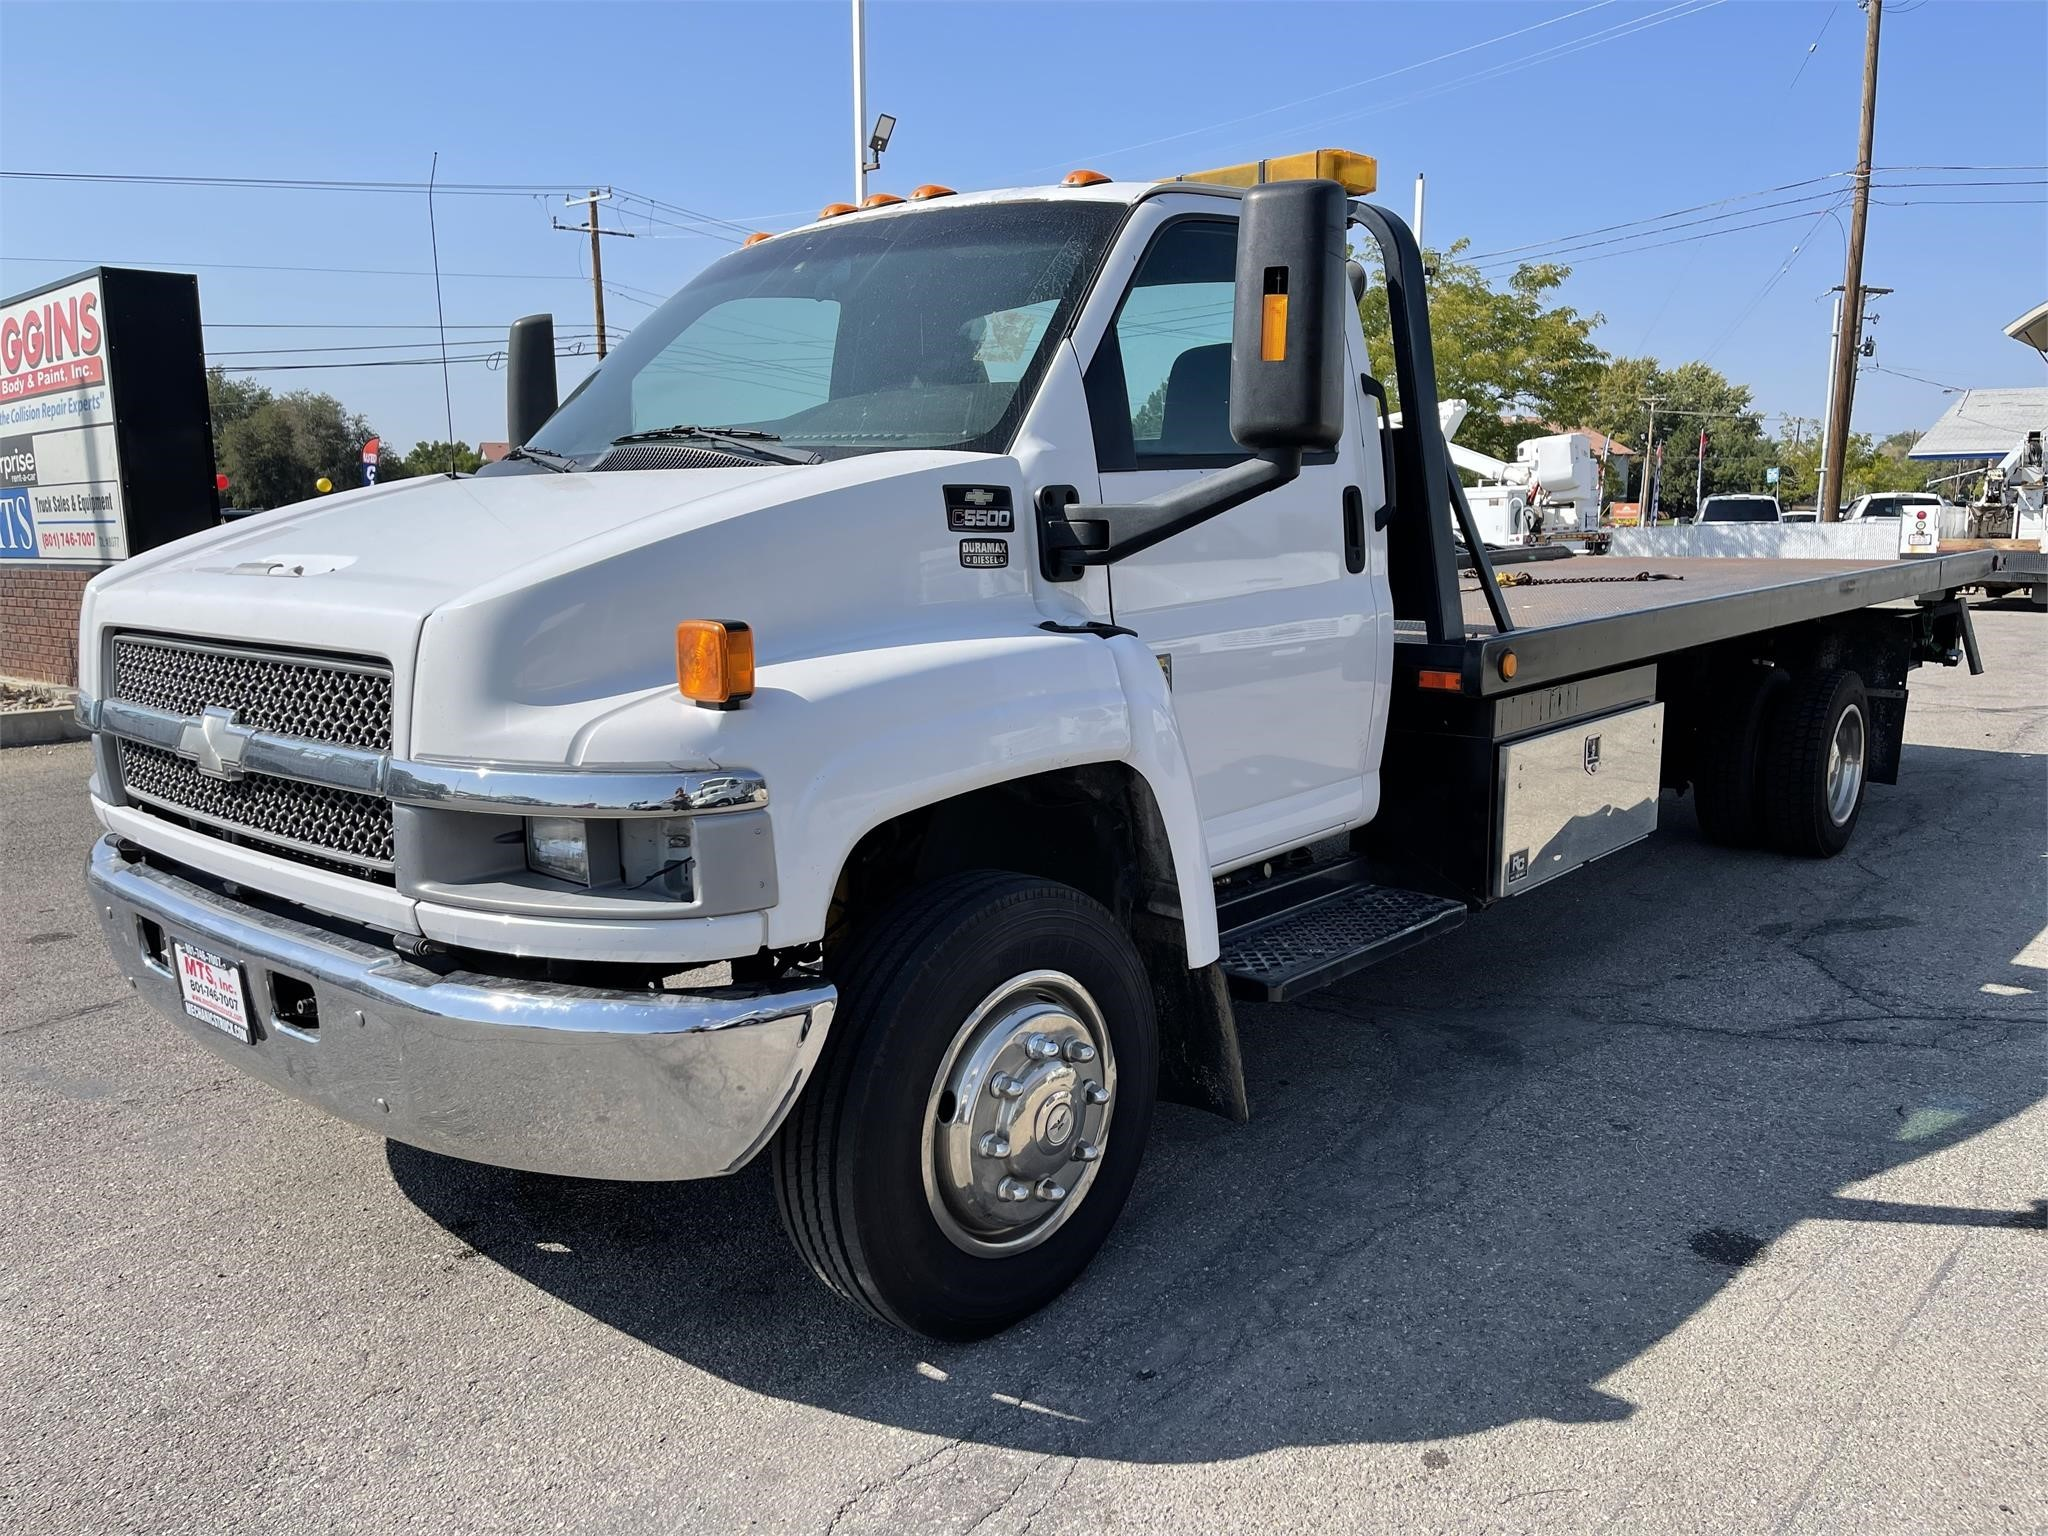 Used, 2005, CHEVROLET, C5500, Rollback Tow Truck